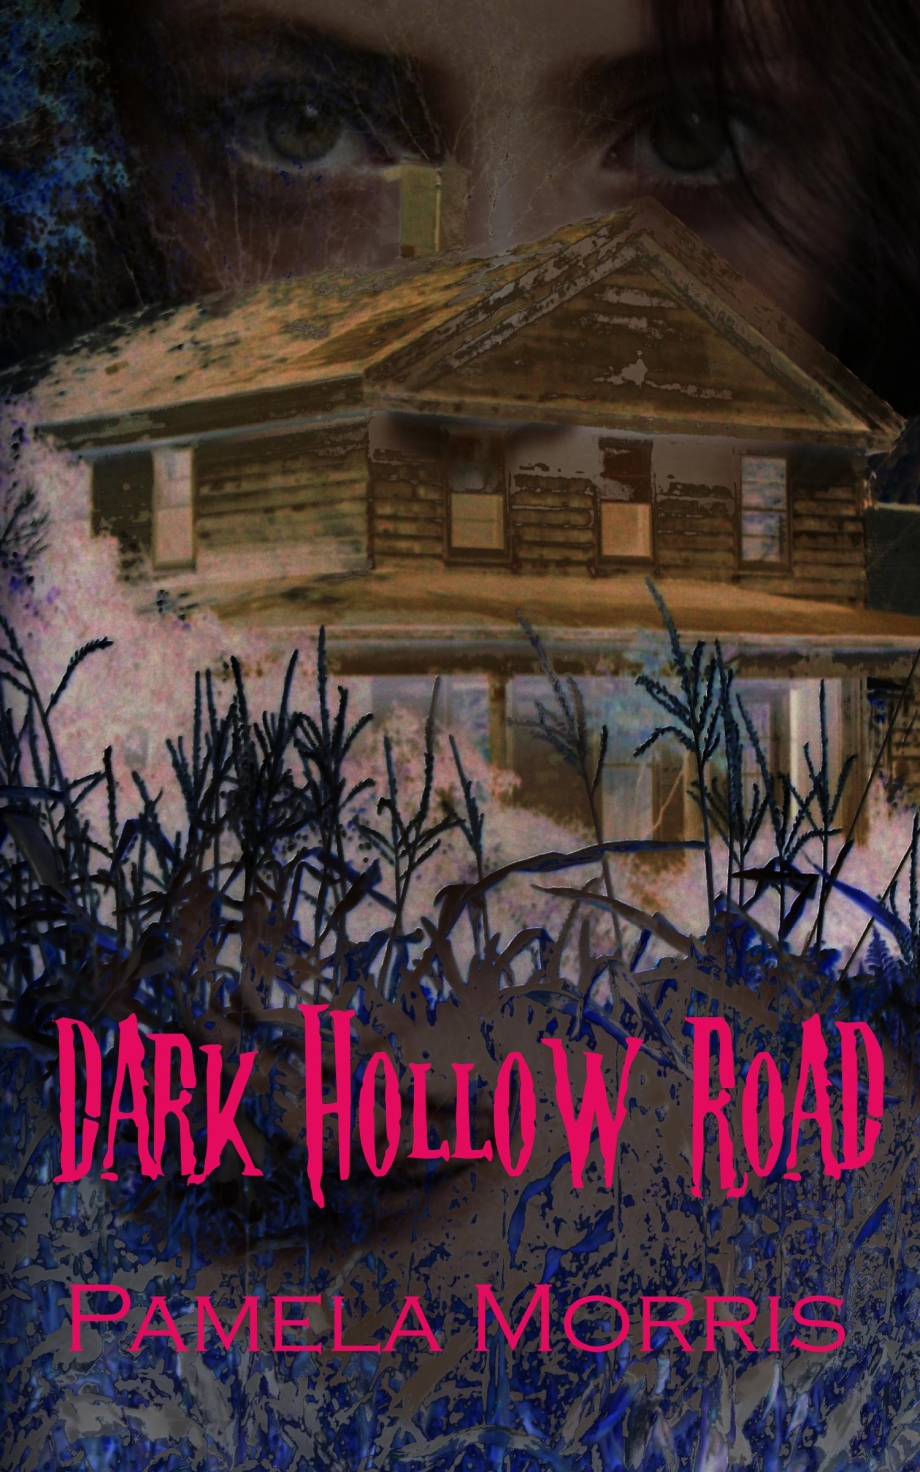 DarkHollowRoad-FrontOnly